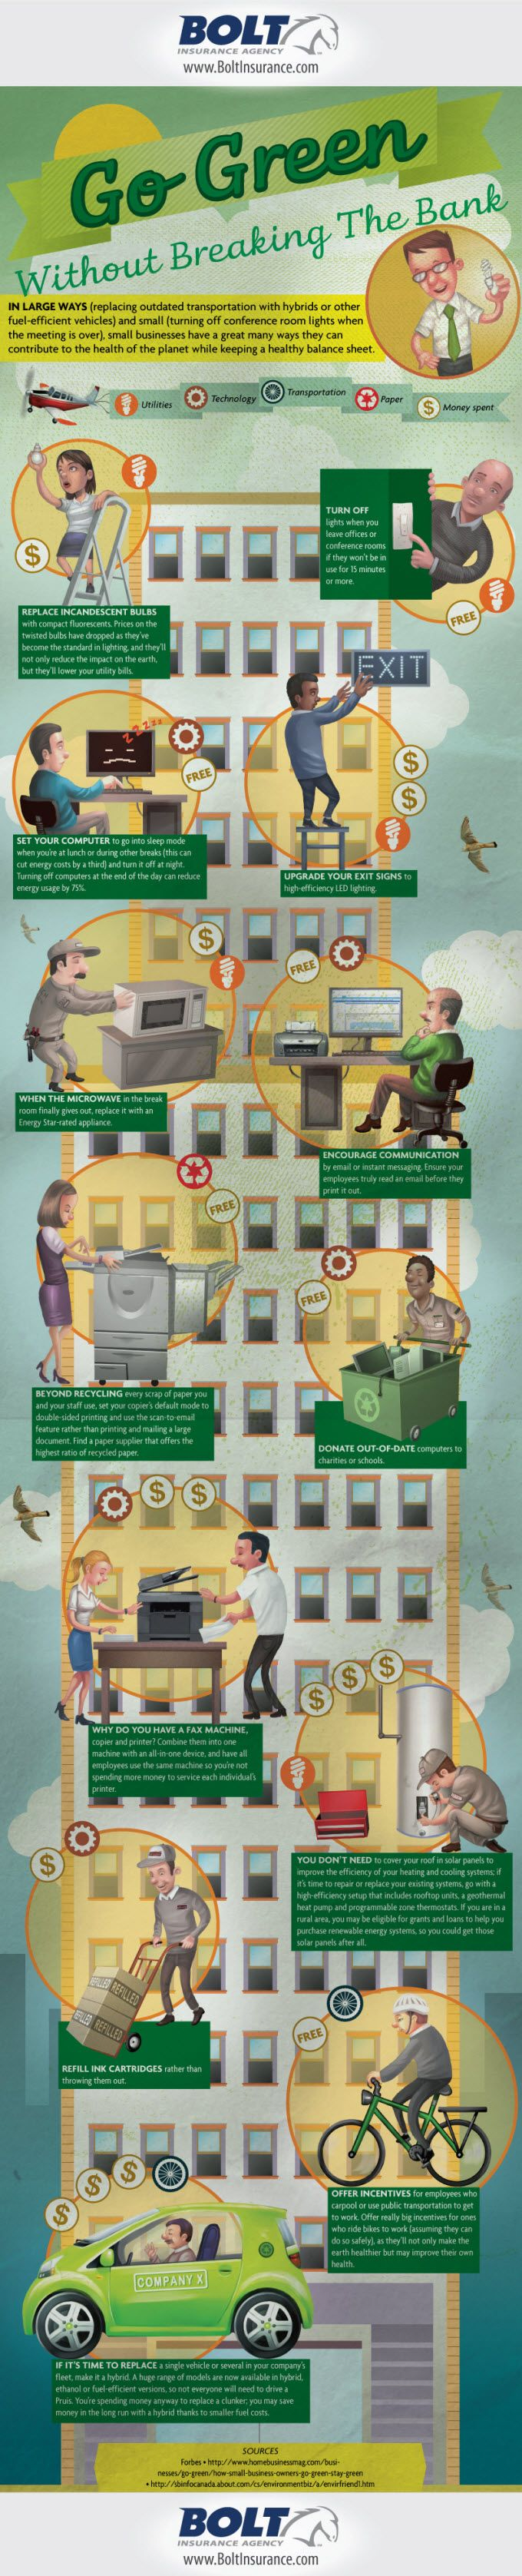 go green ideas for office. help your business go green without breaking the bank infographic ideas for office t